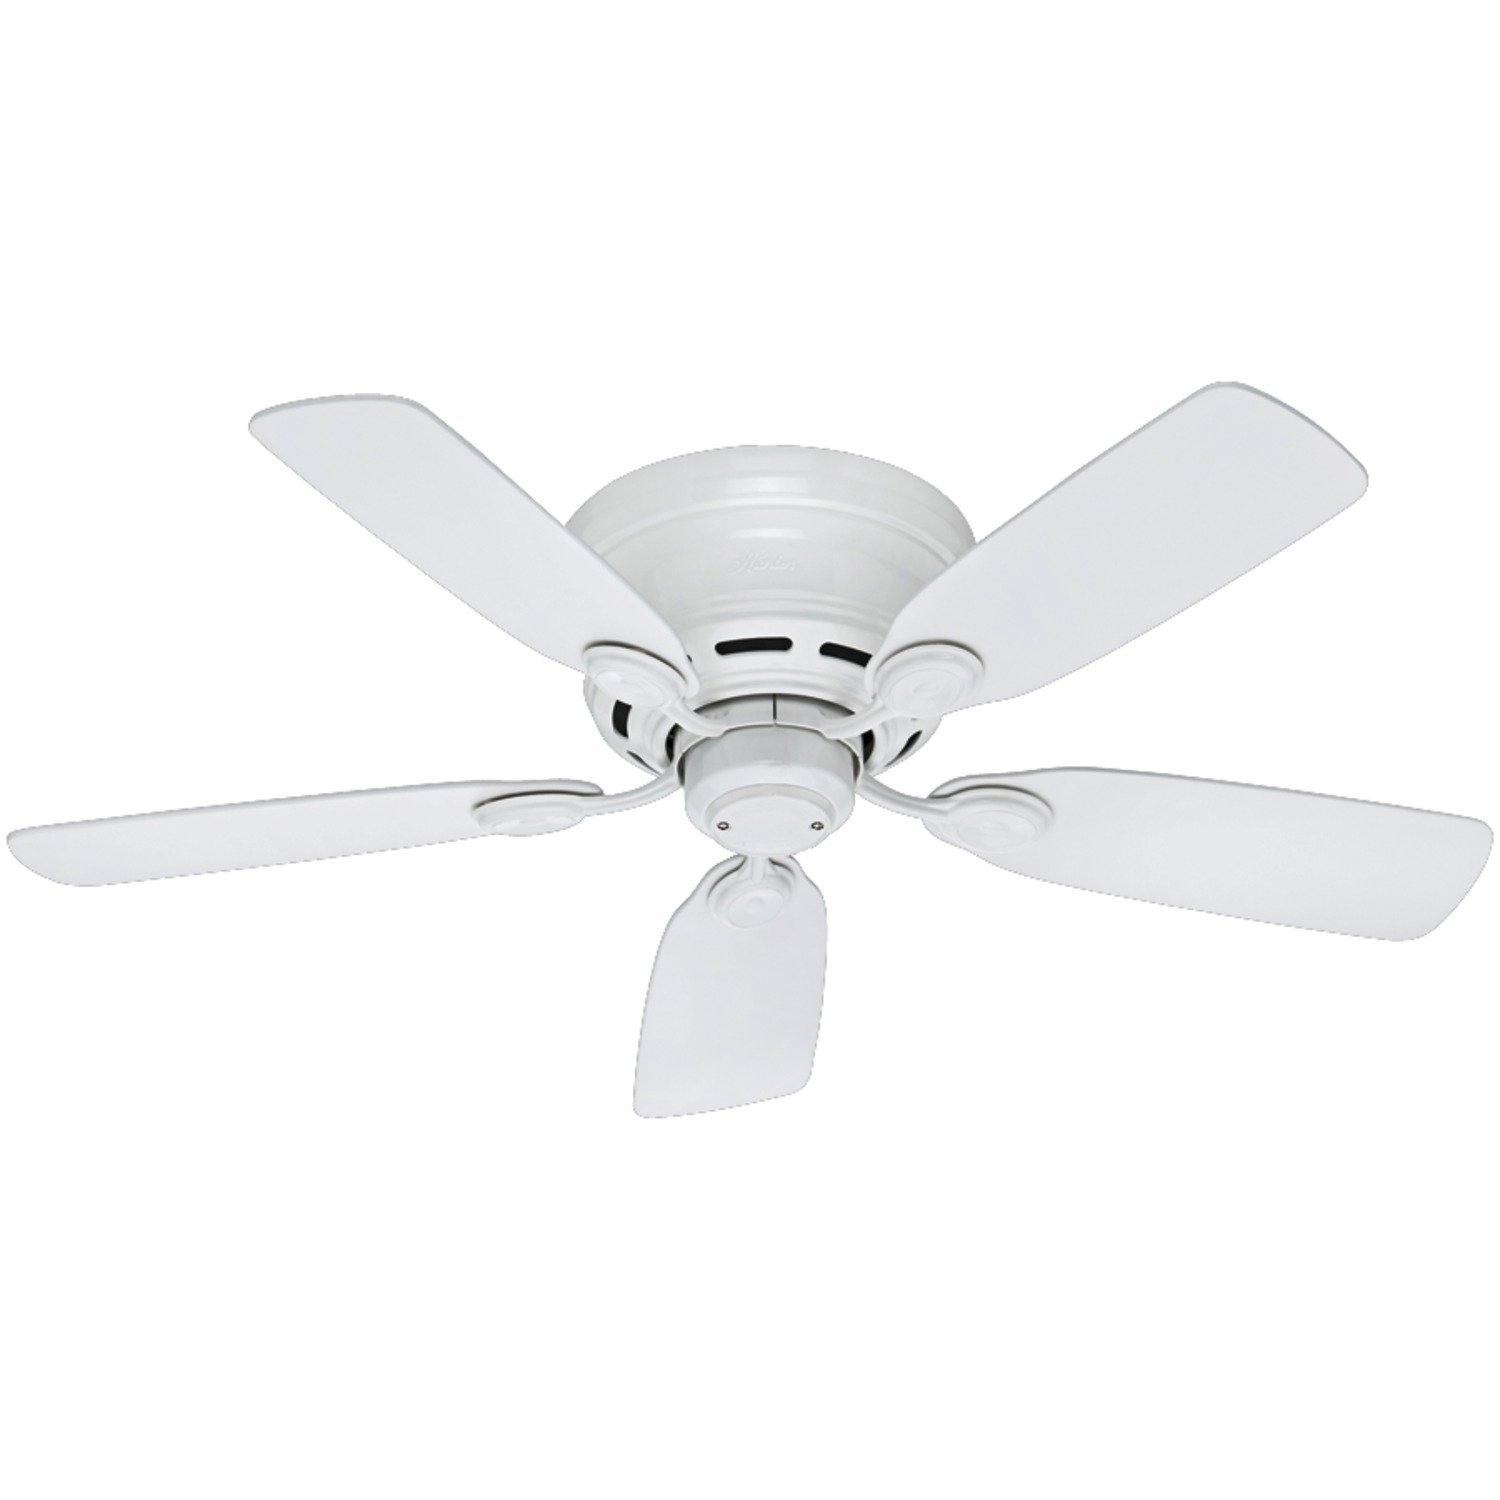 Hunter 51059 Low Profile Iv 5 Blade Ceiling Fan 42 Inch White